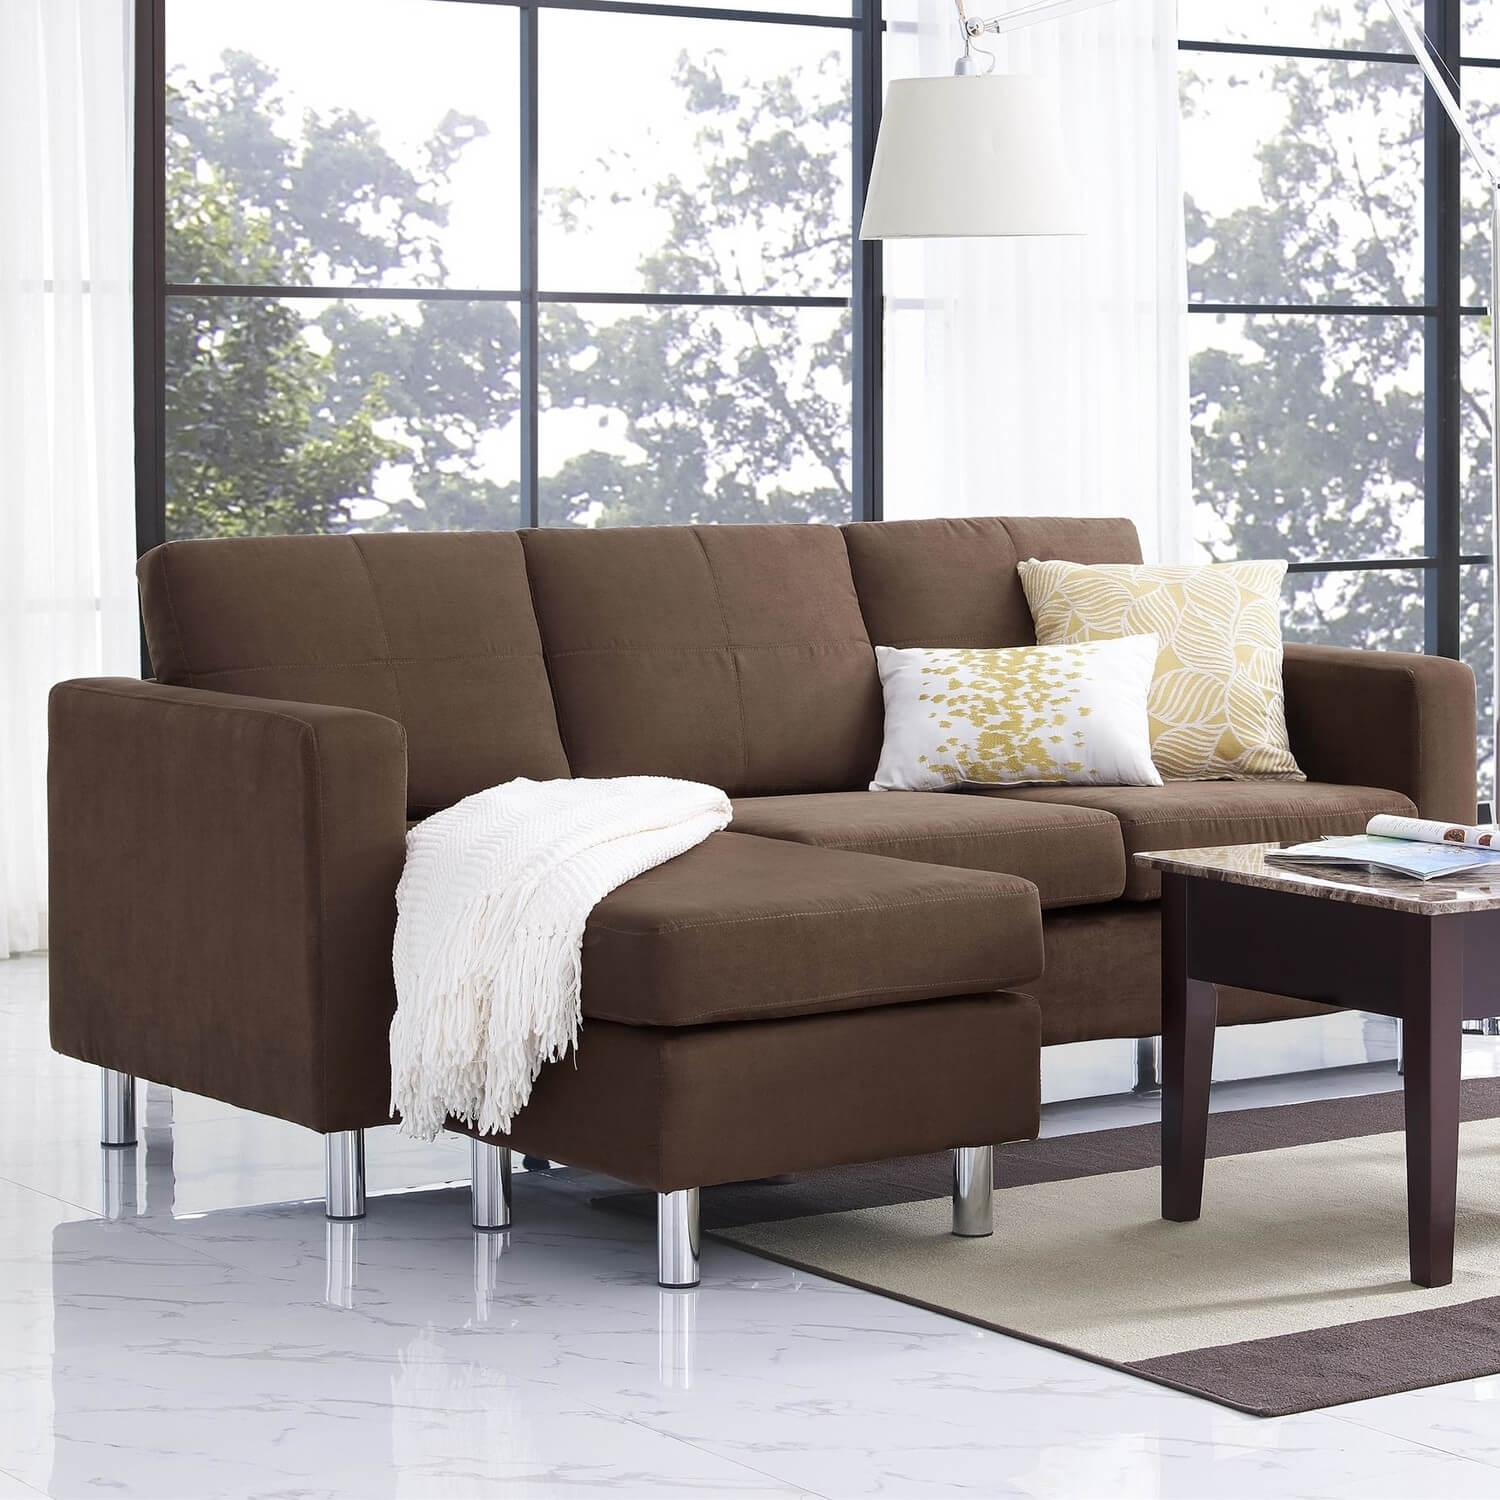 Small Spaces Sectional Sofa With Microfiber Upholstery • Sectional Sofa Within Sectional Sofas Under 1500 (Photo 2 of 10)